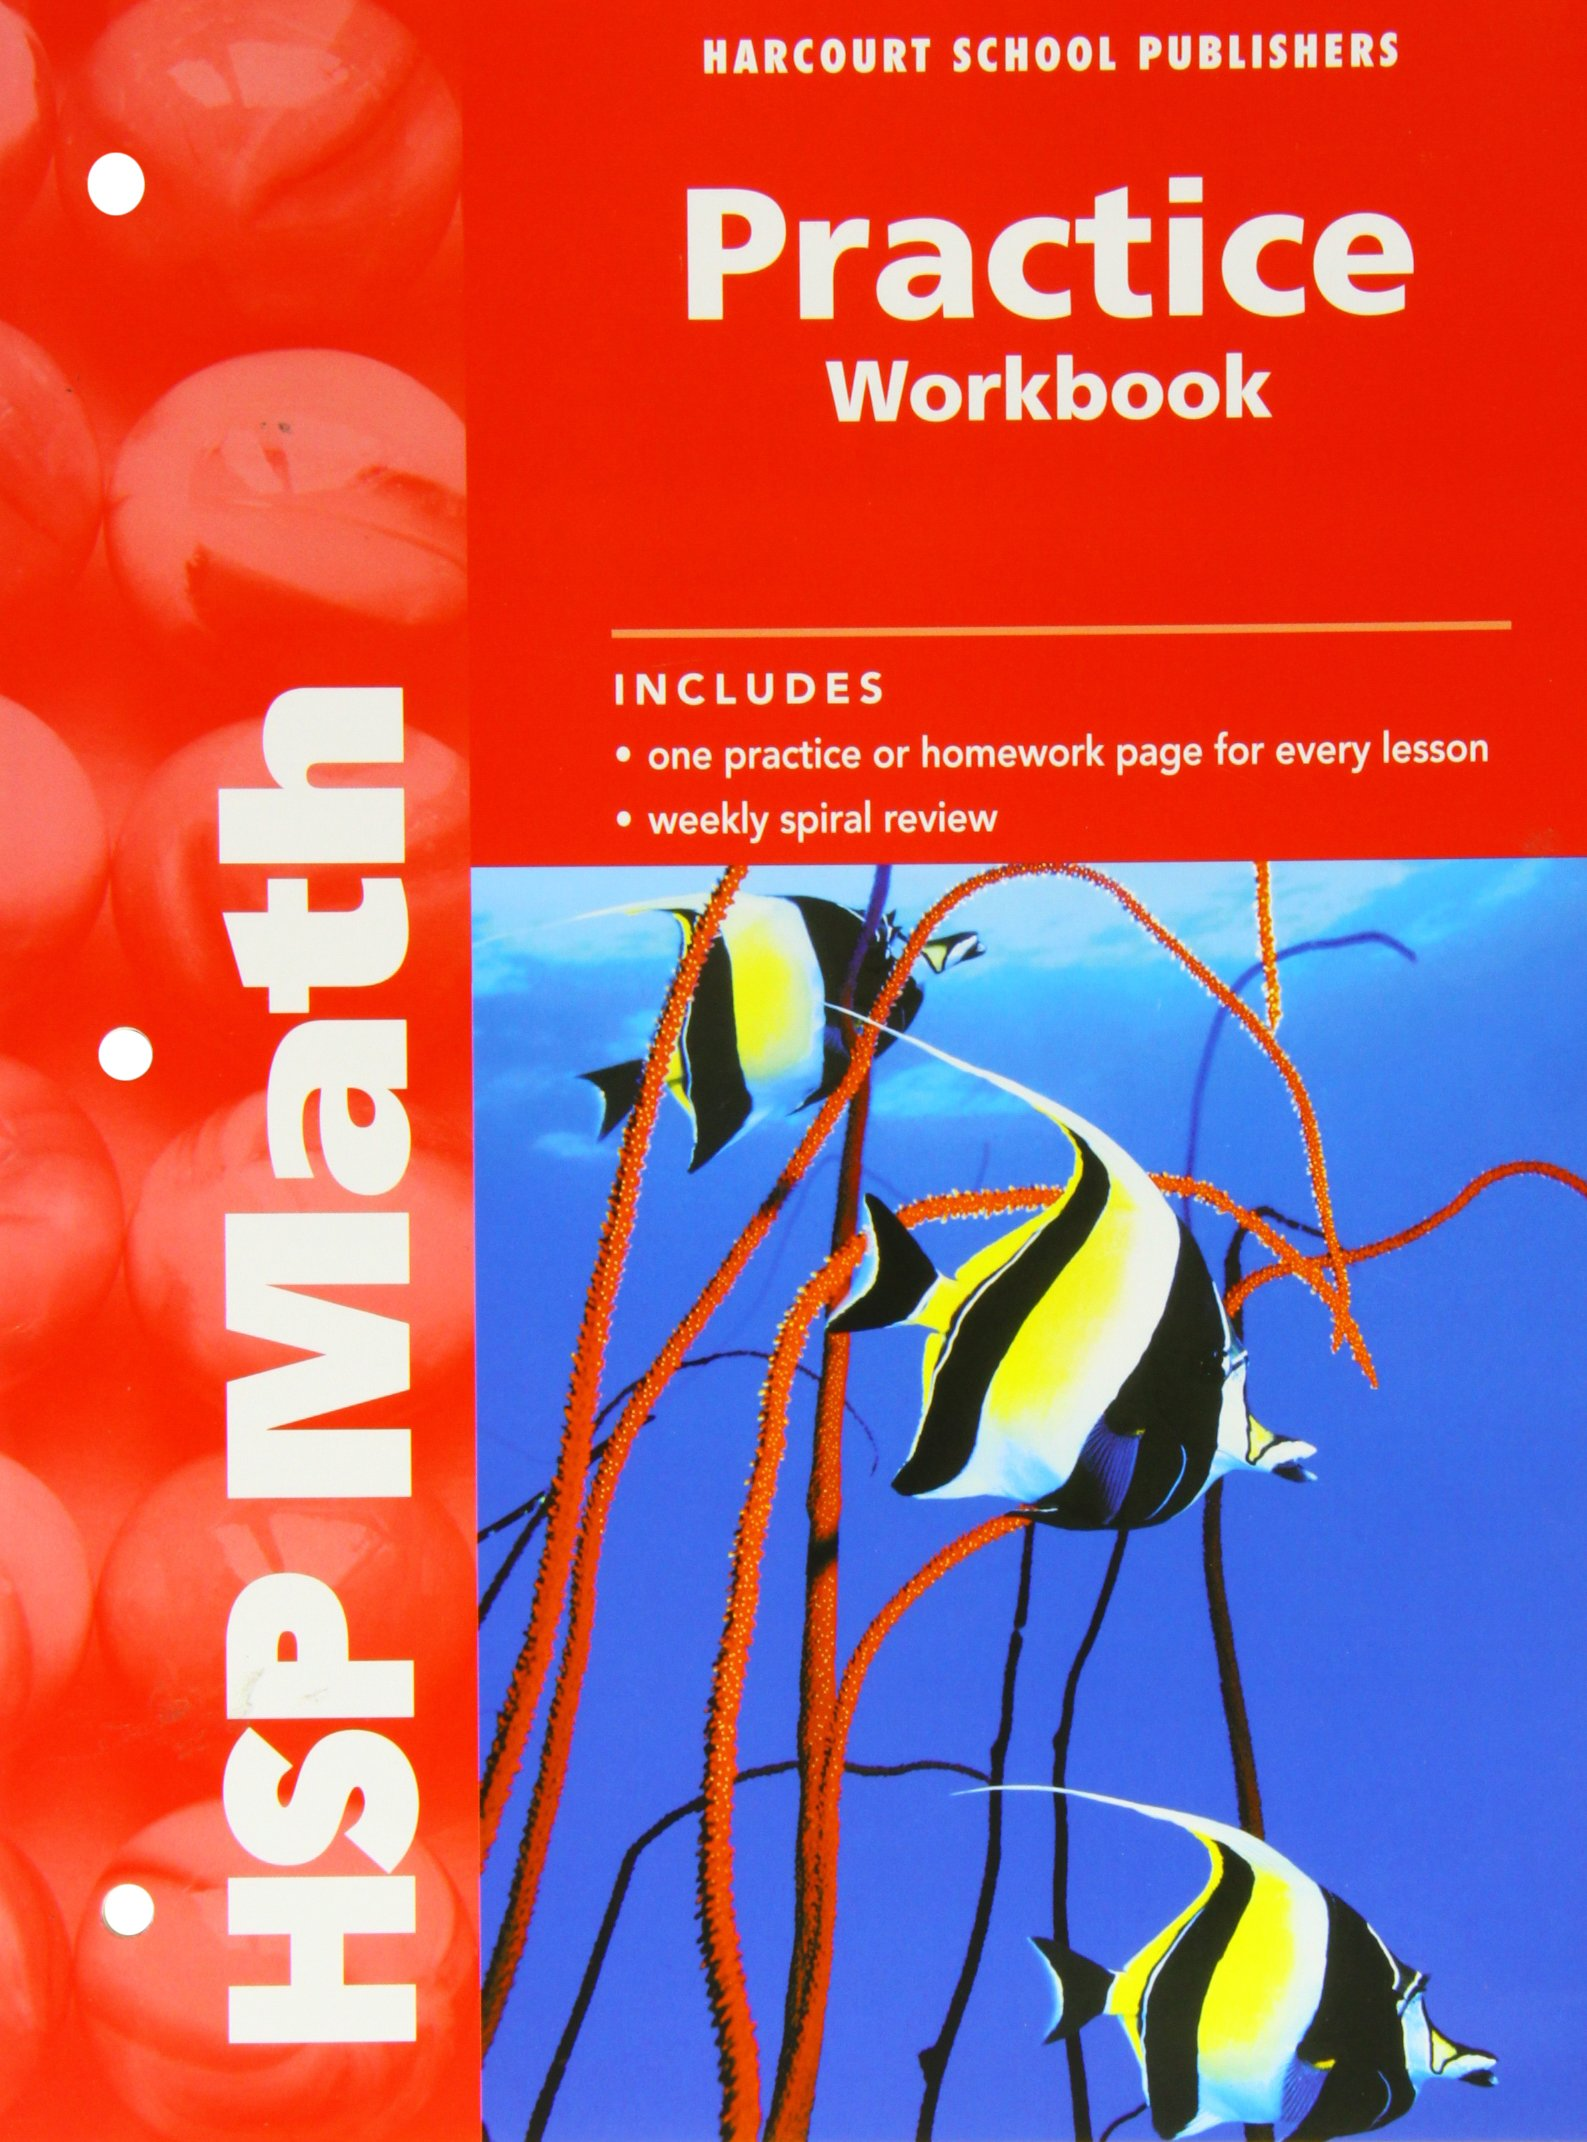 Hsp math practice workbook grade 4 harcourt school publishers hsp math practice workbook grade 4 harcourt school publishers 9780153567612 amazon books fandeluxe Gallery